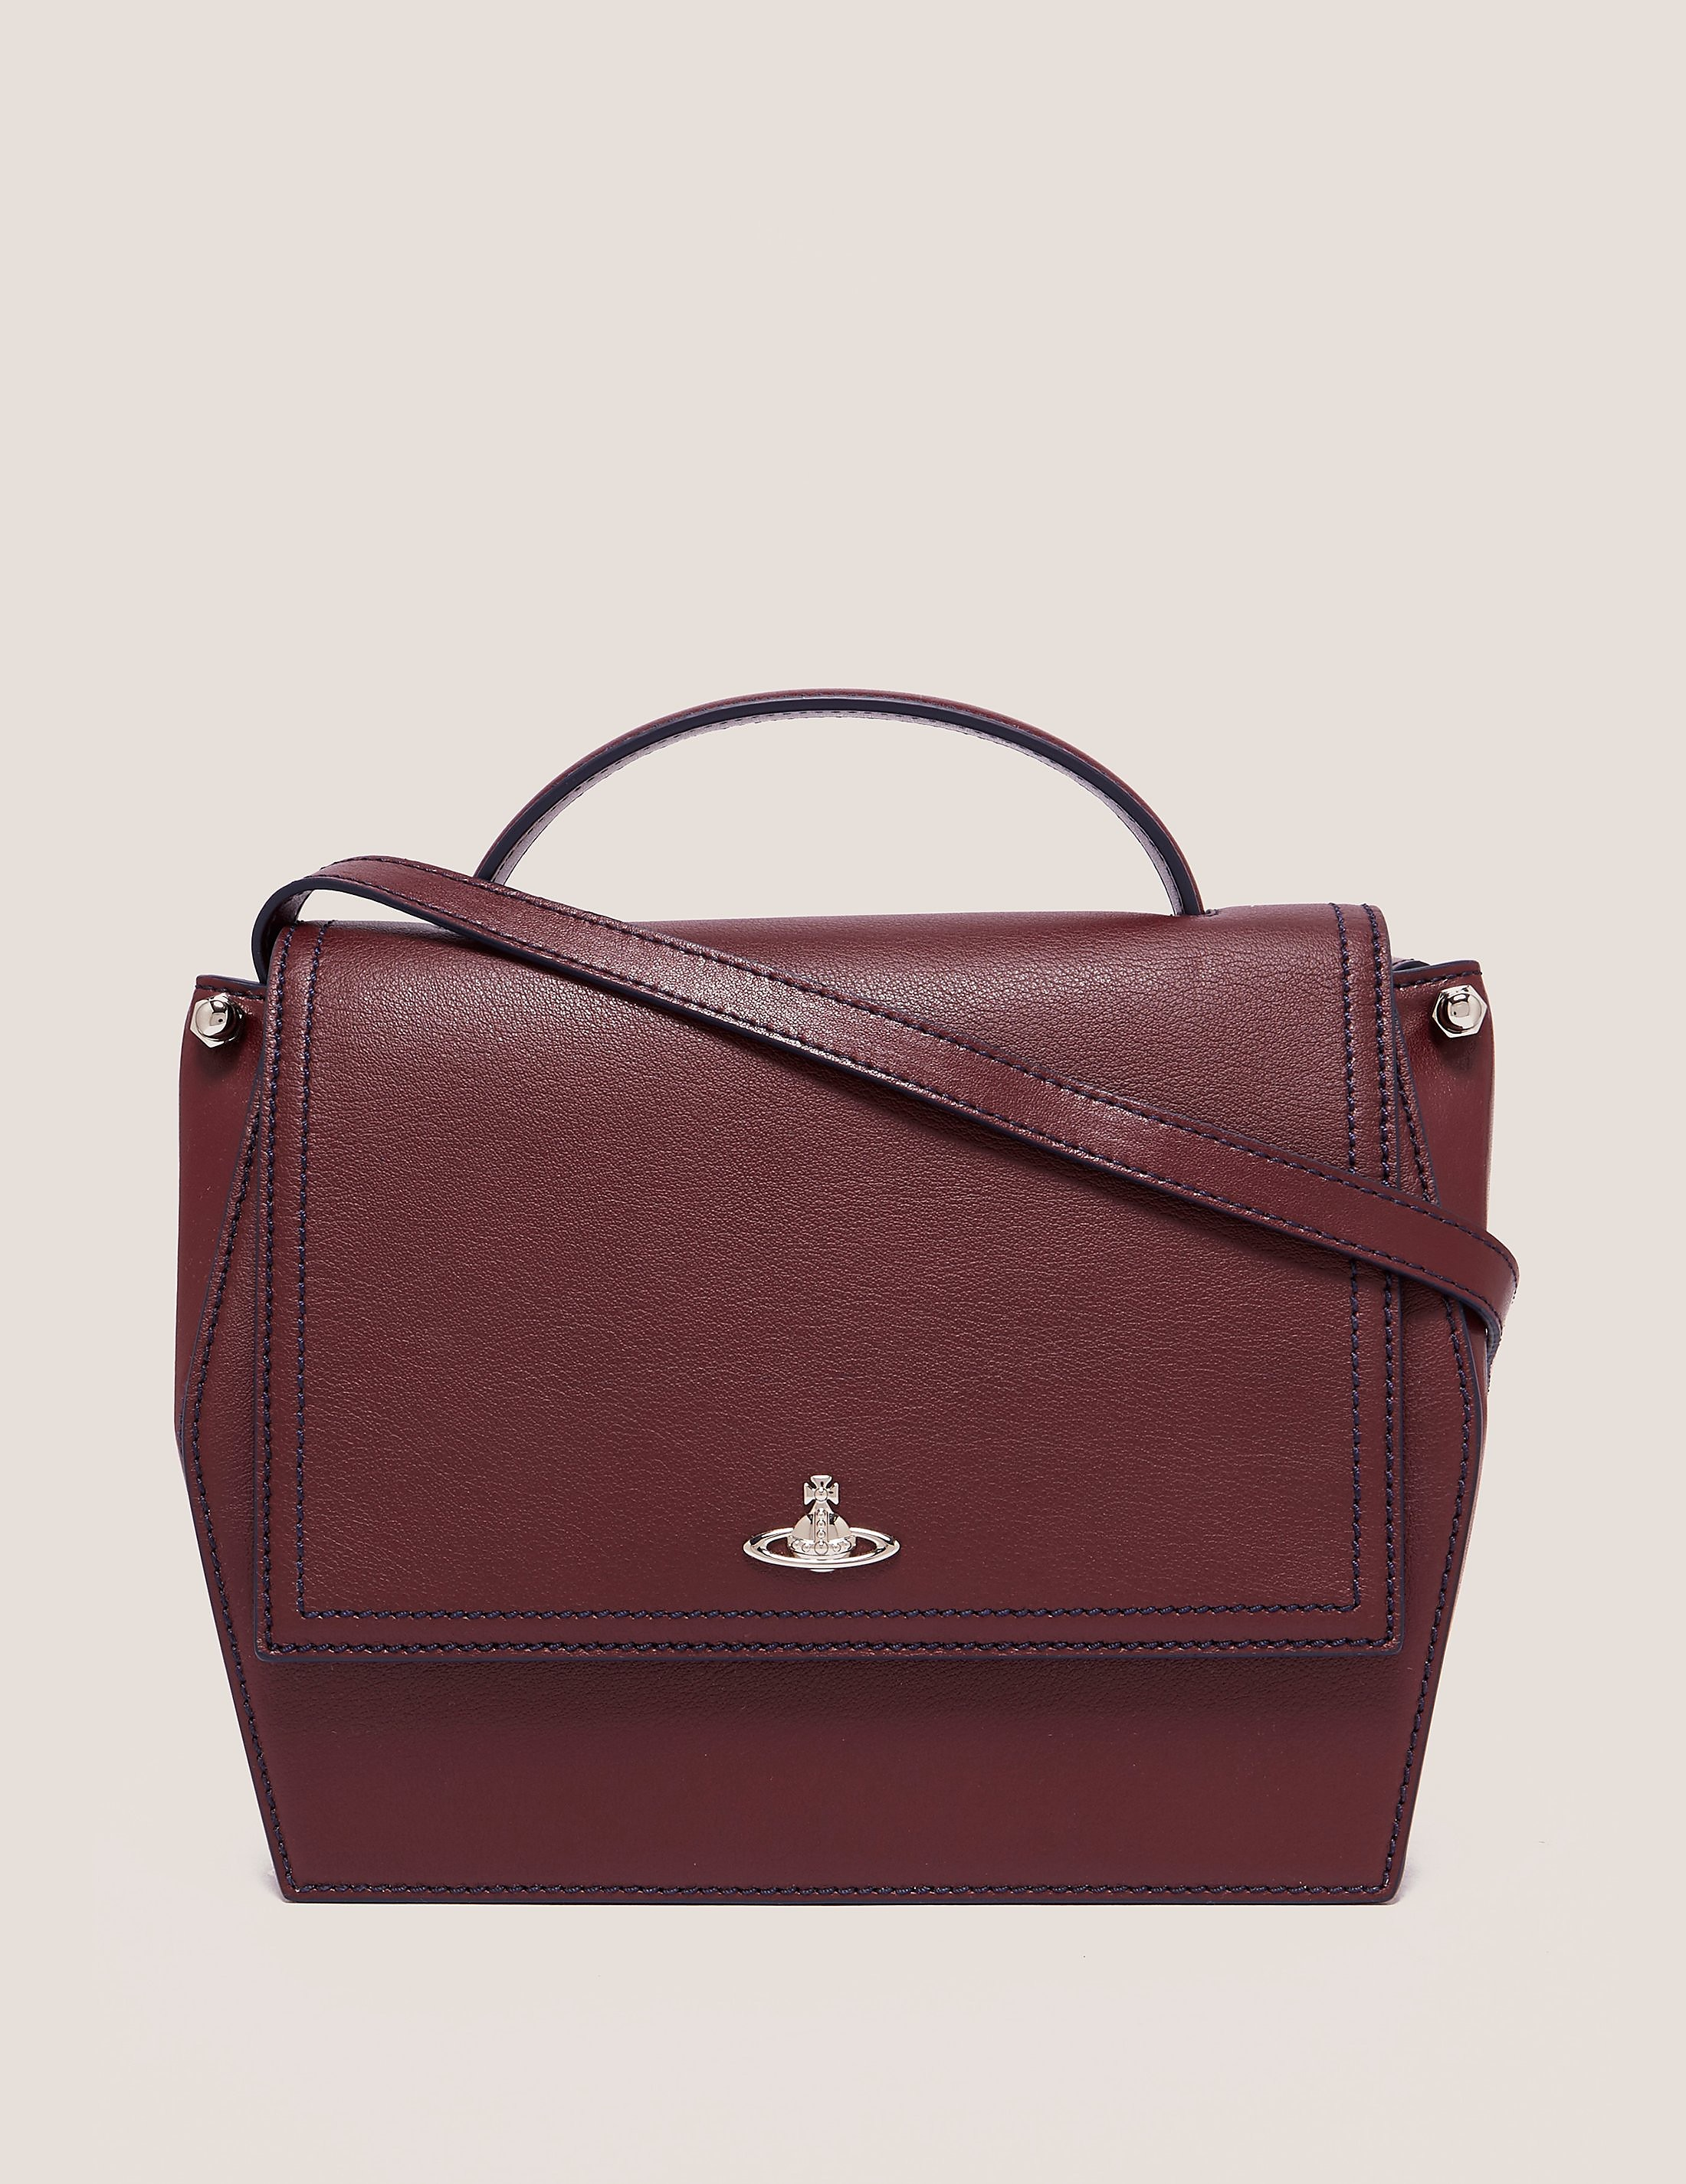 Vivienne Westwood Cambridge Bag